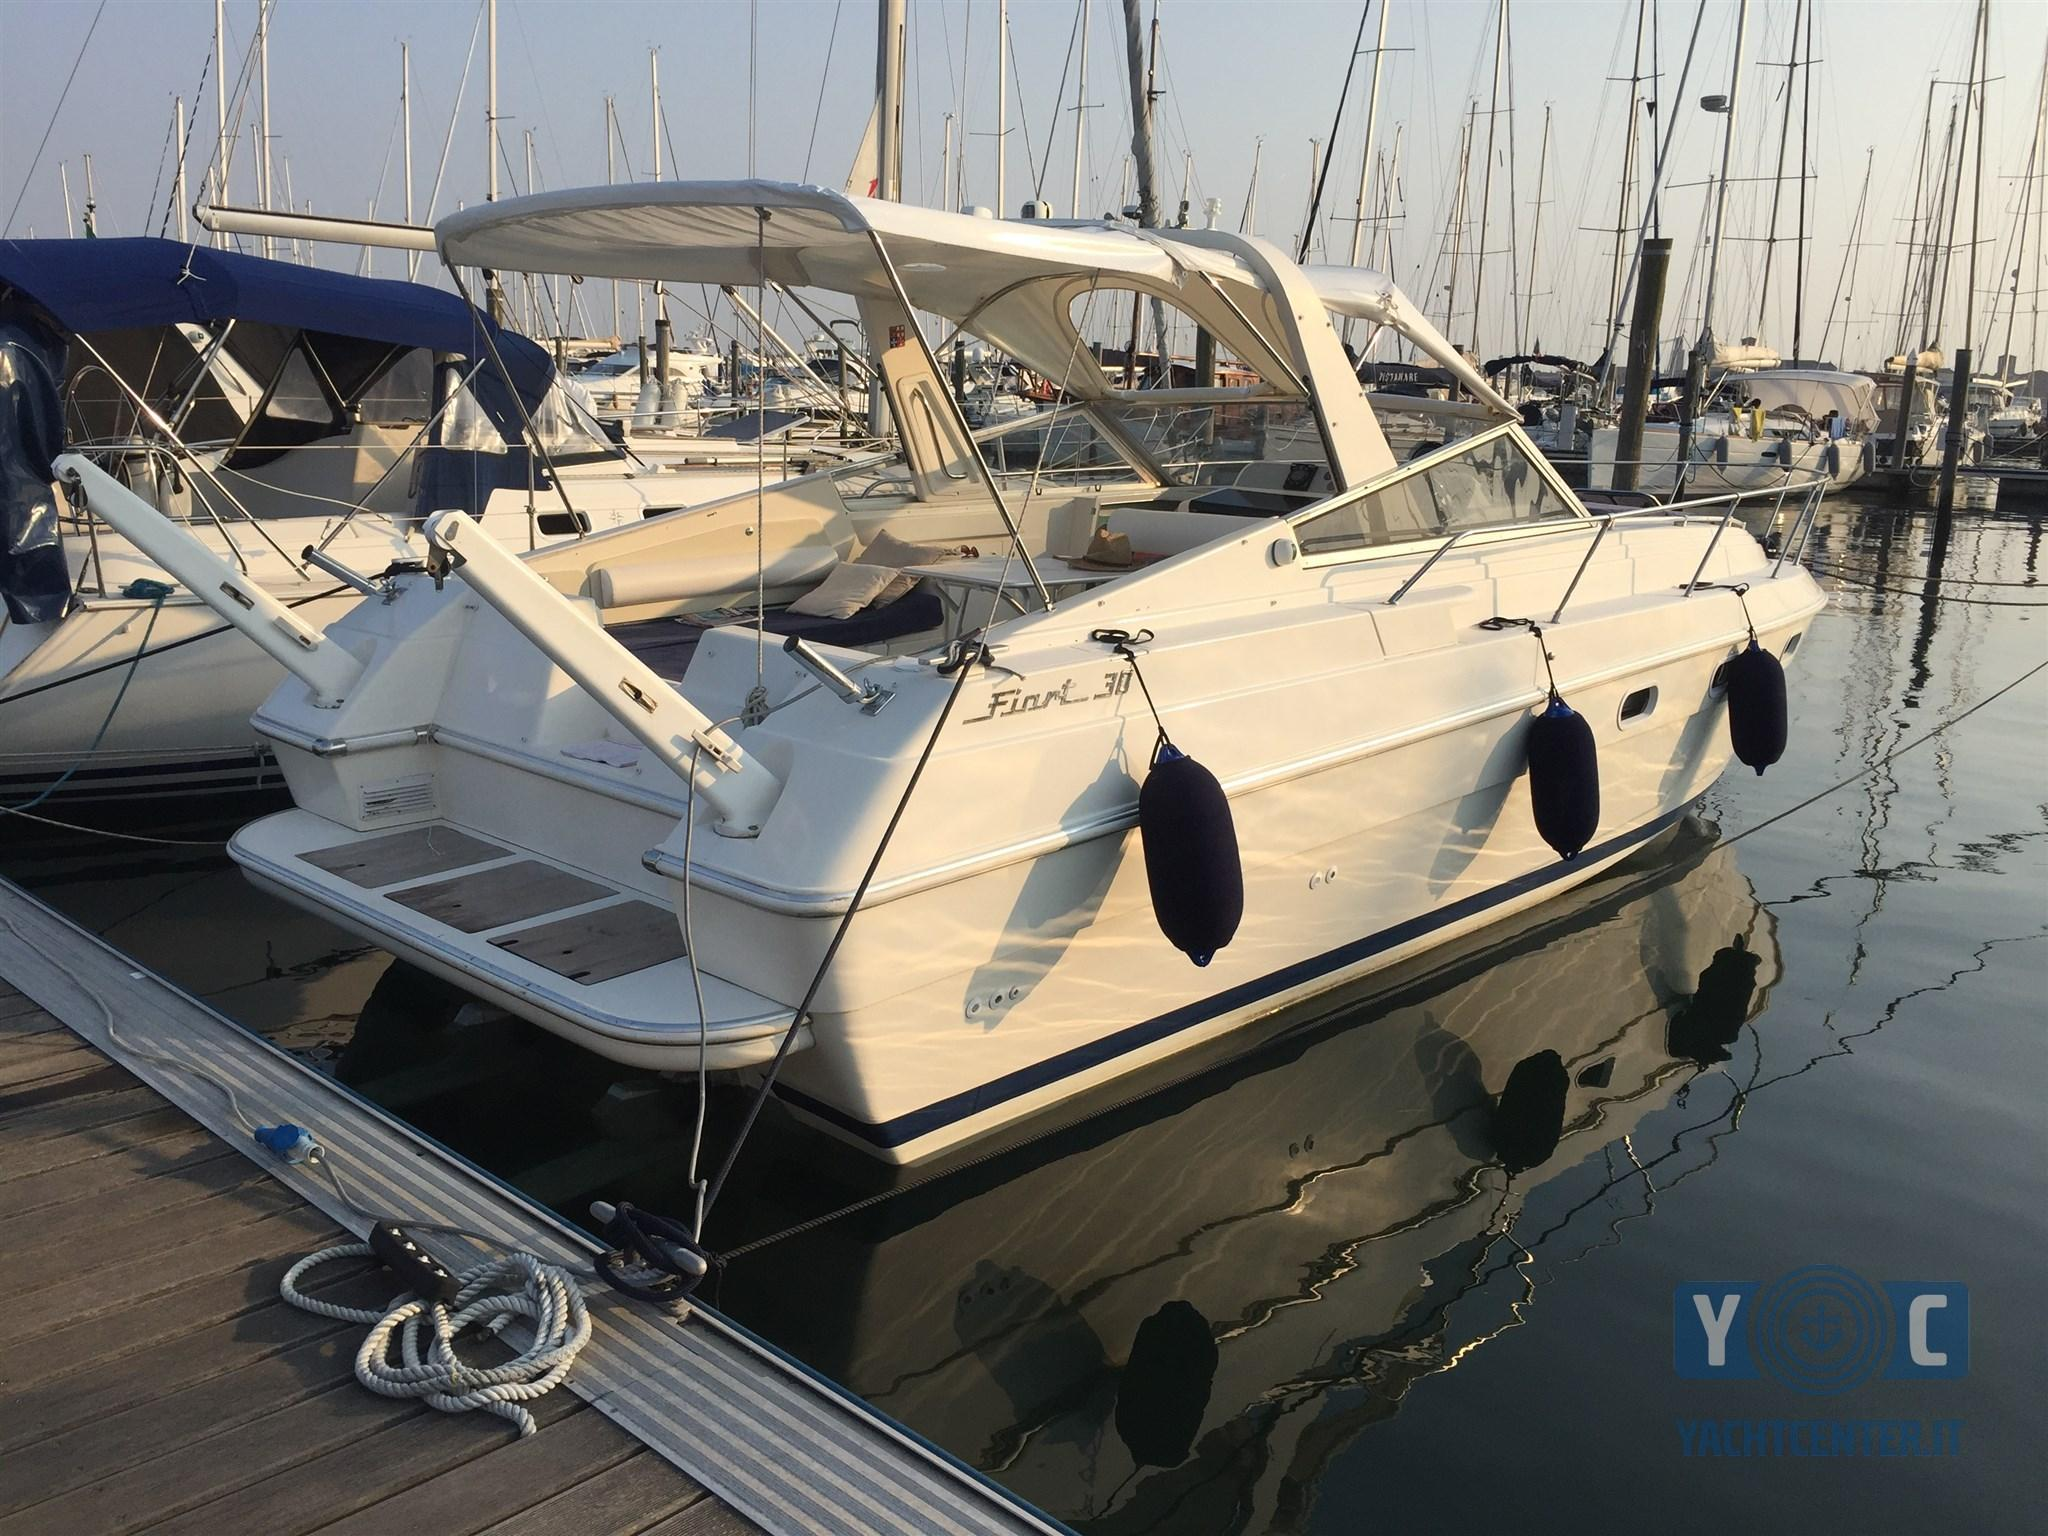 6293851_20170709054605912_1_XLARGE&w=520&h=346&t=1499608073000 search boats for sale yachtworld com  at crackthecode.co